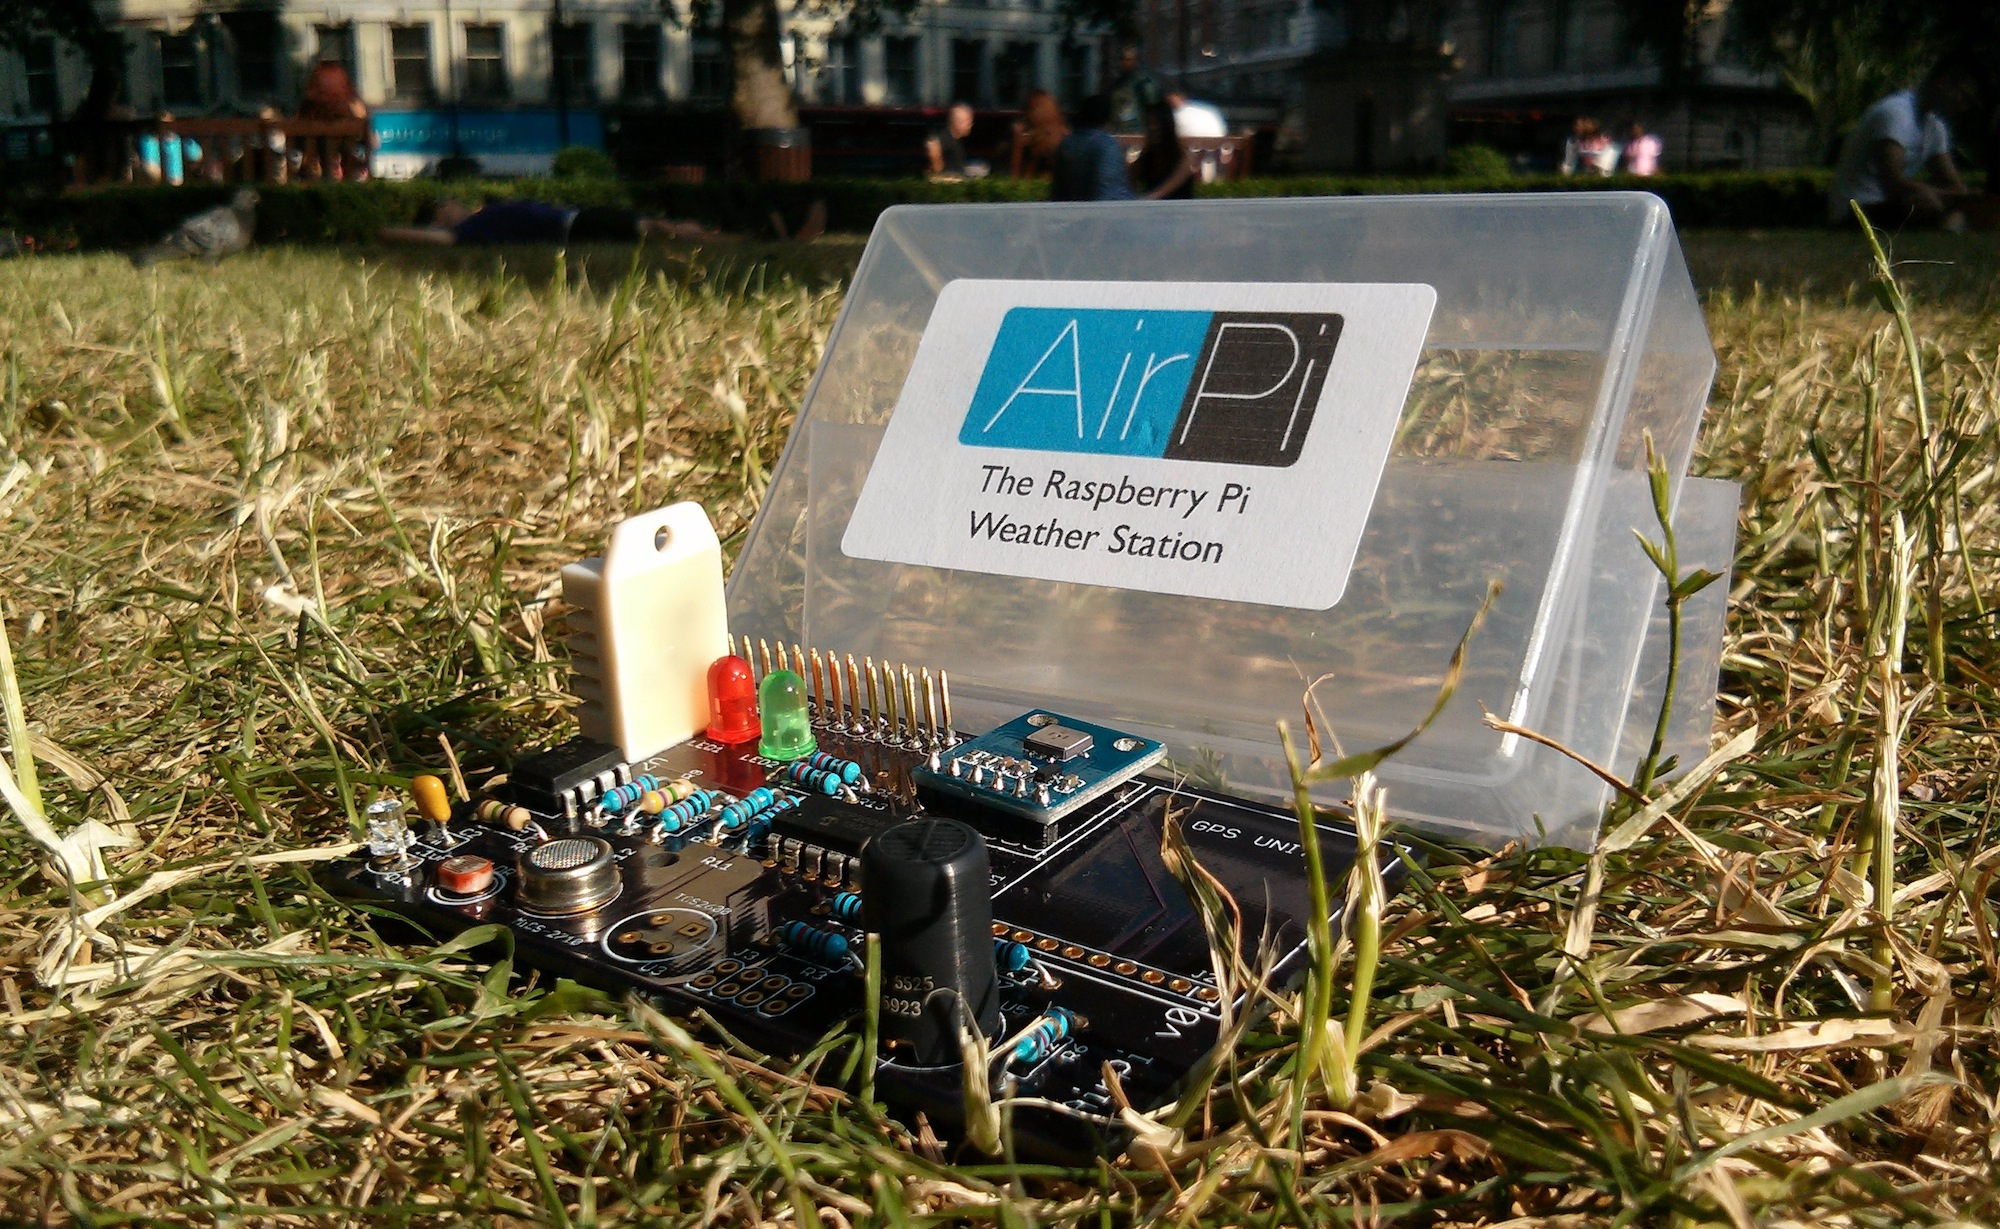 Airpi The Raspberry Pi Weather Station Raspberry Pi